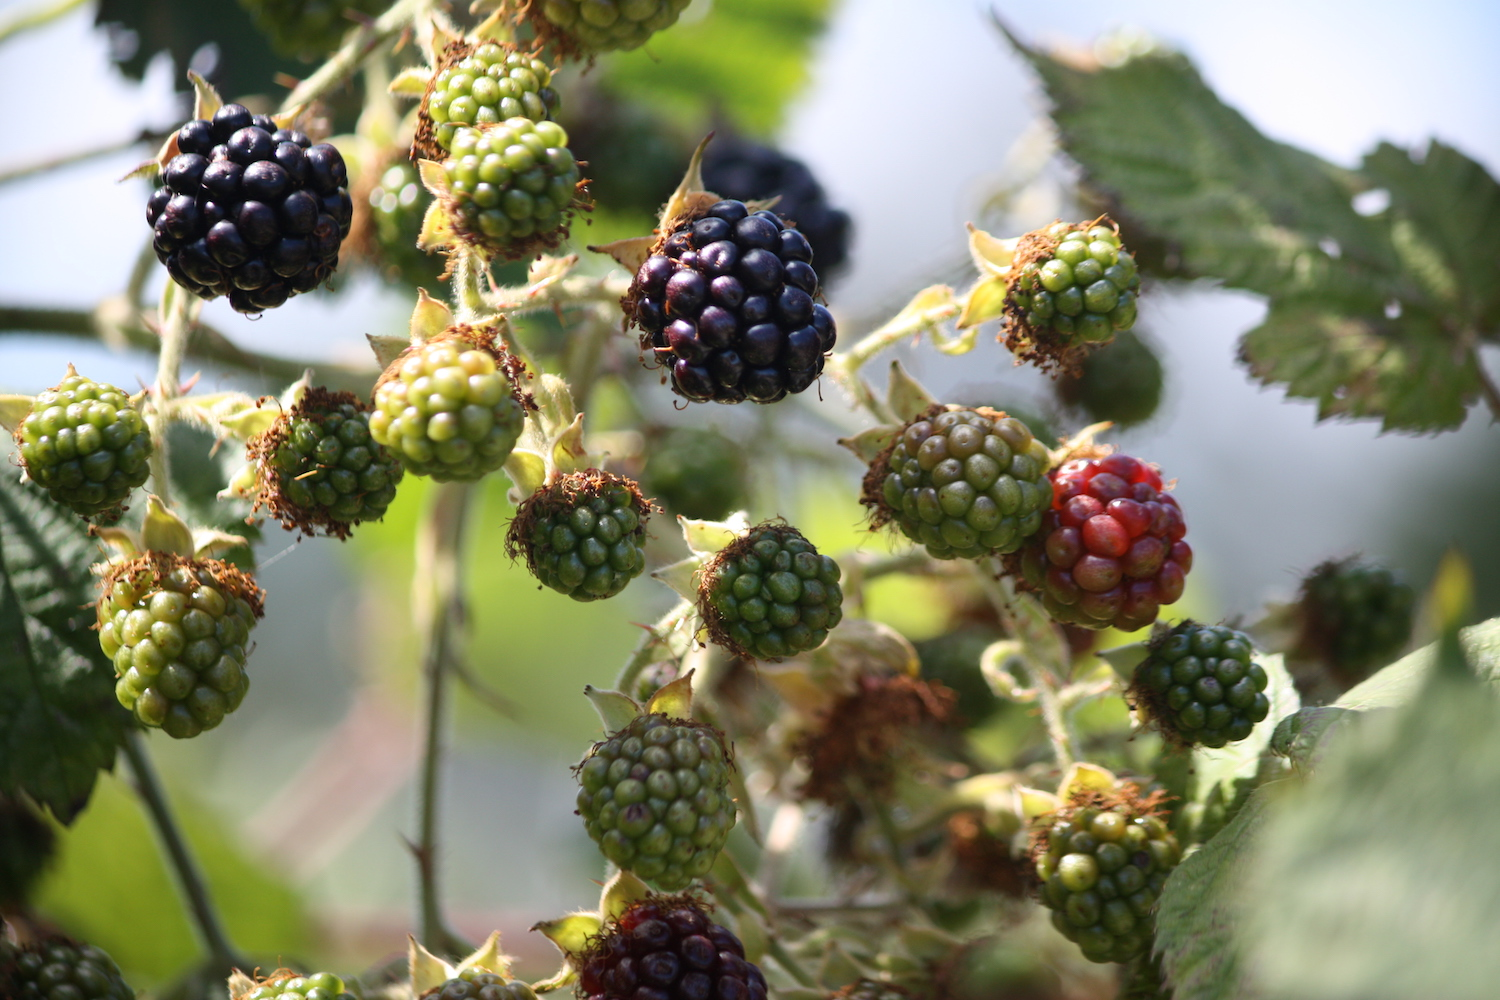 Blackberries on vine web.jpeg